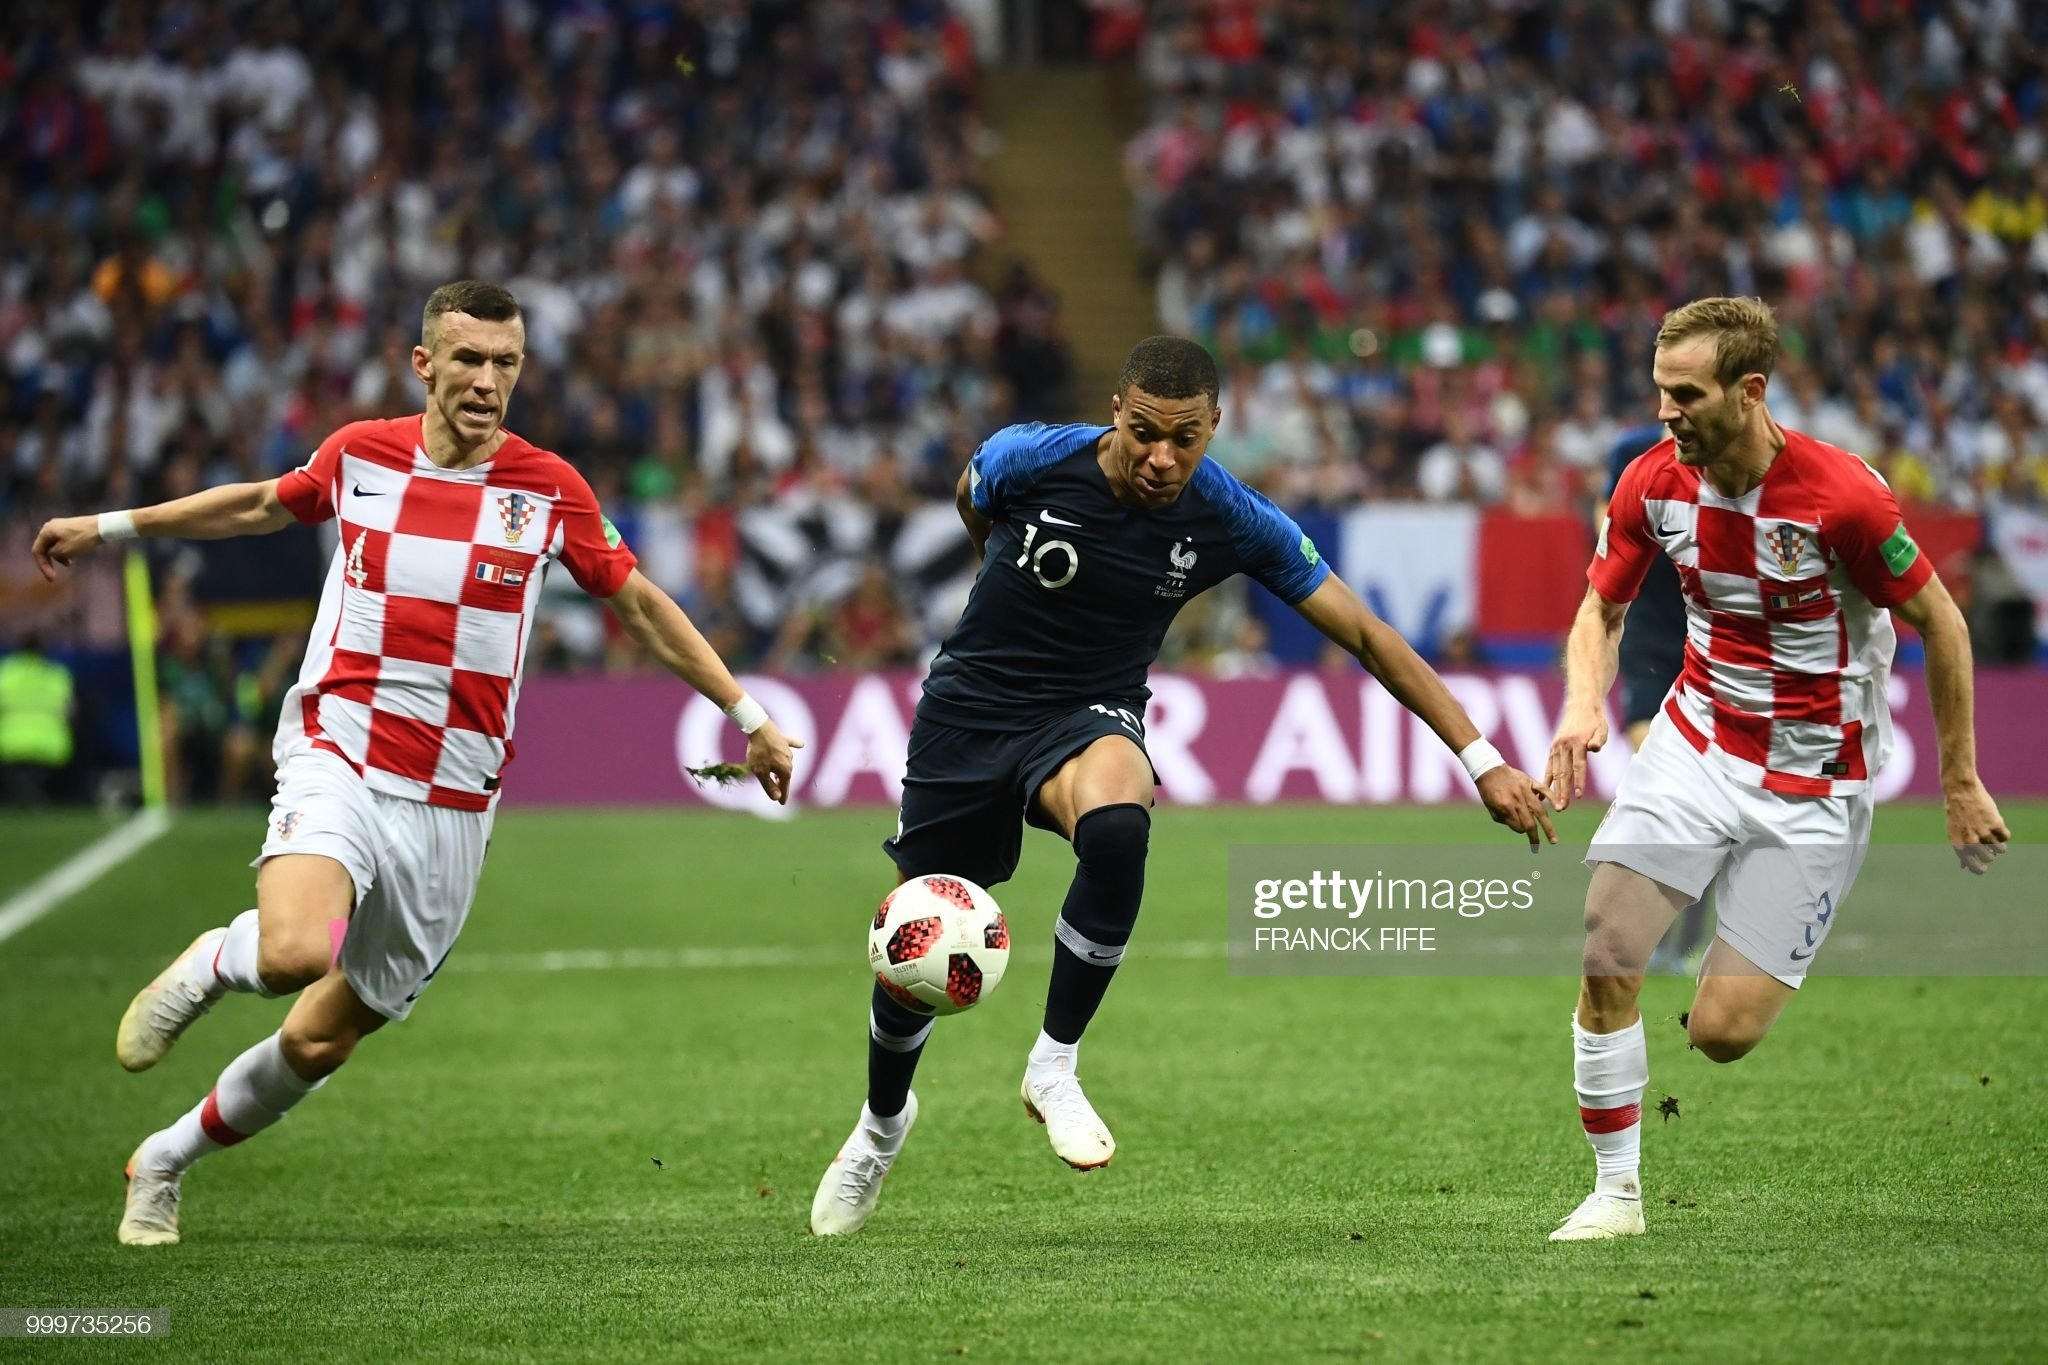 France vs Croatia preview, prediction and odds